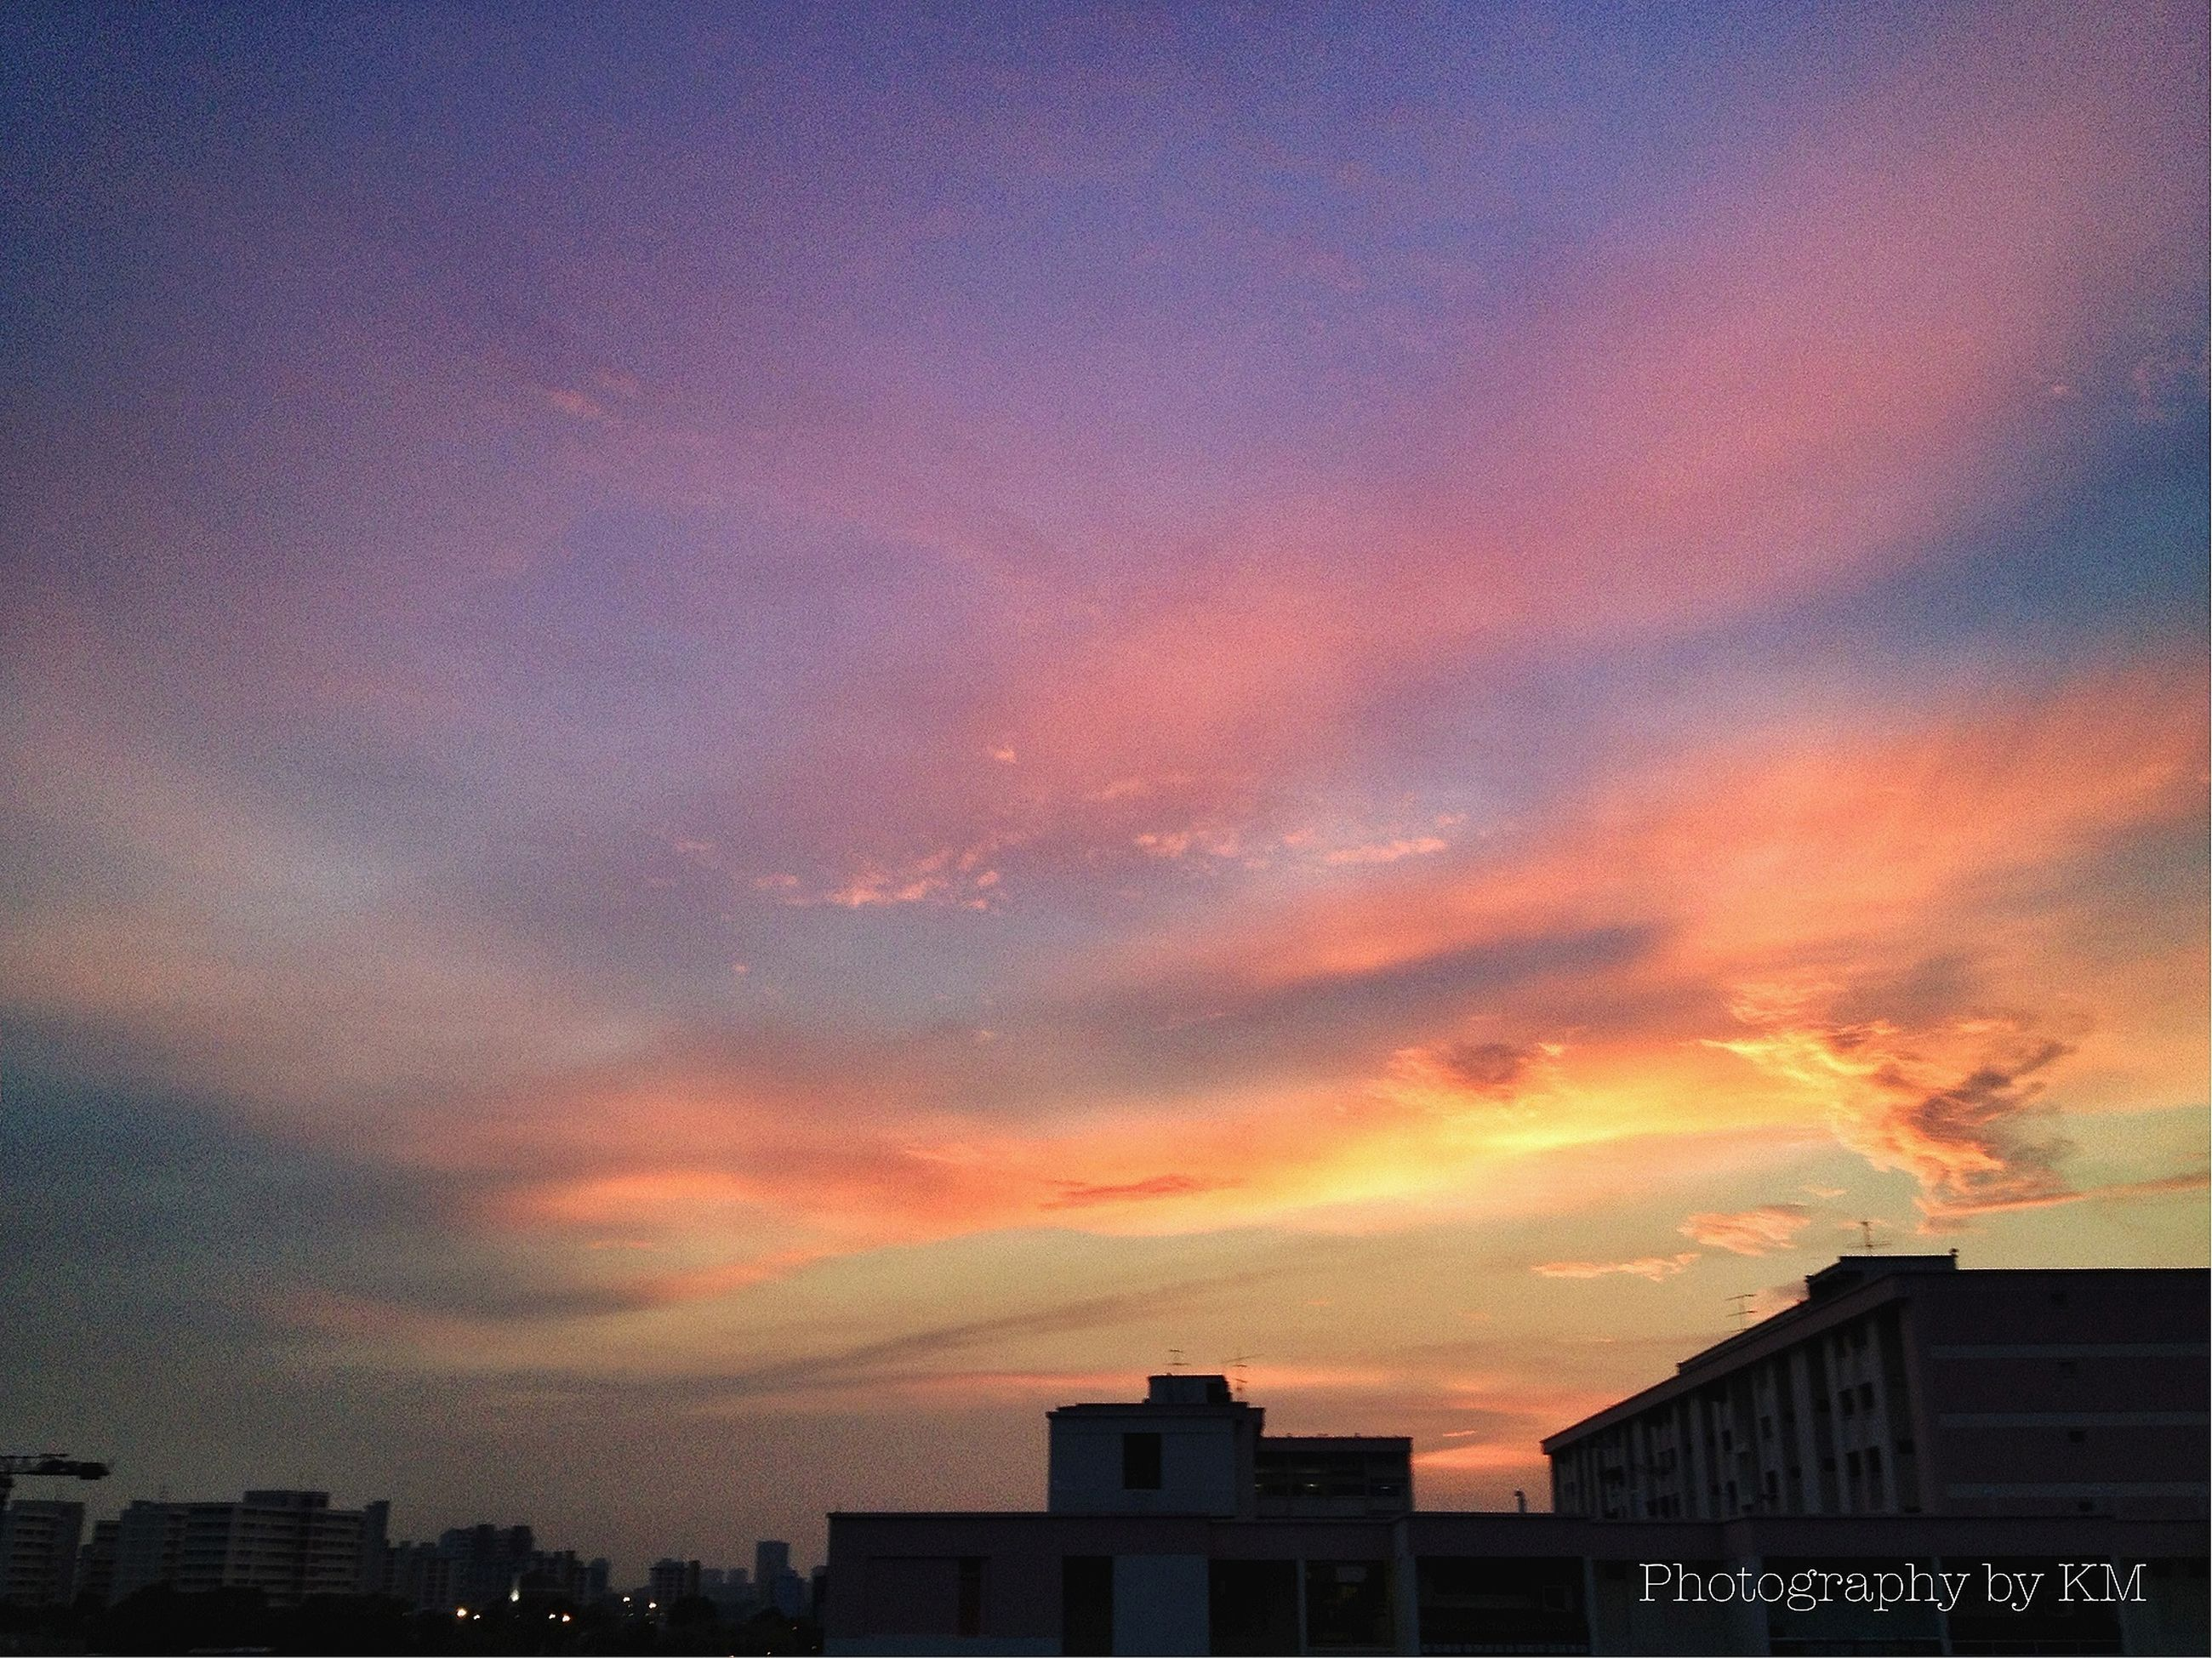 architecture, building exterior, built structure, sunset, sky, cloud - sky, low angle view, city, orange color, cloudy, silhouette, residential building, building, cloud, residential structure, dramatic sky, dusk, outdoors, weather, nature